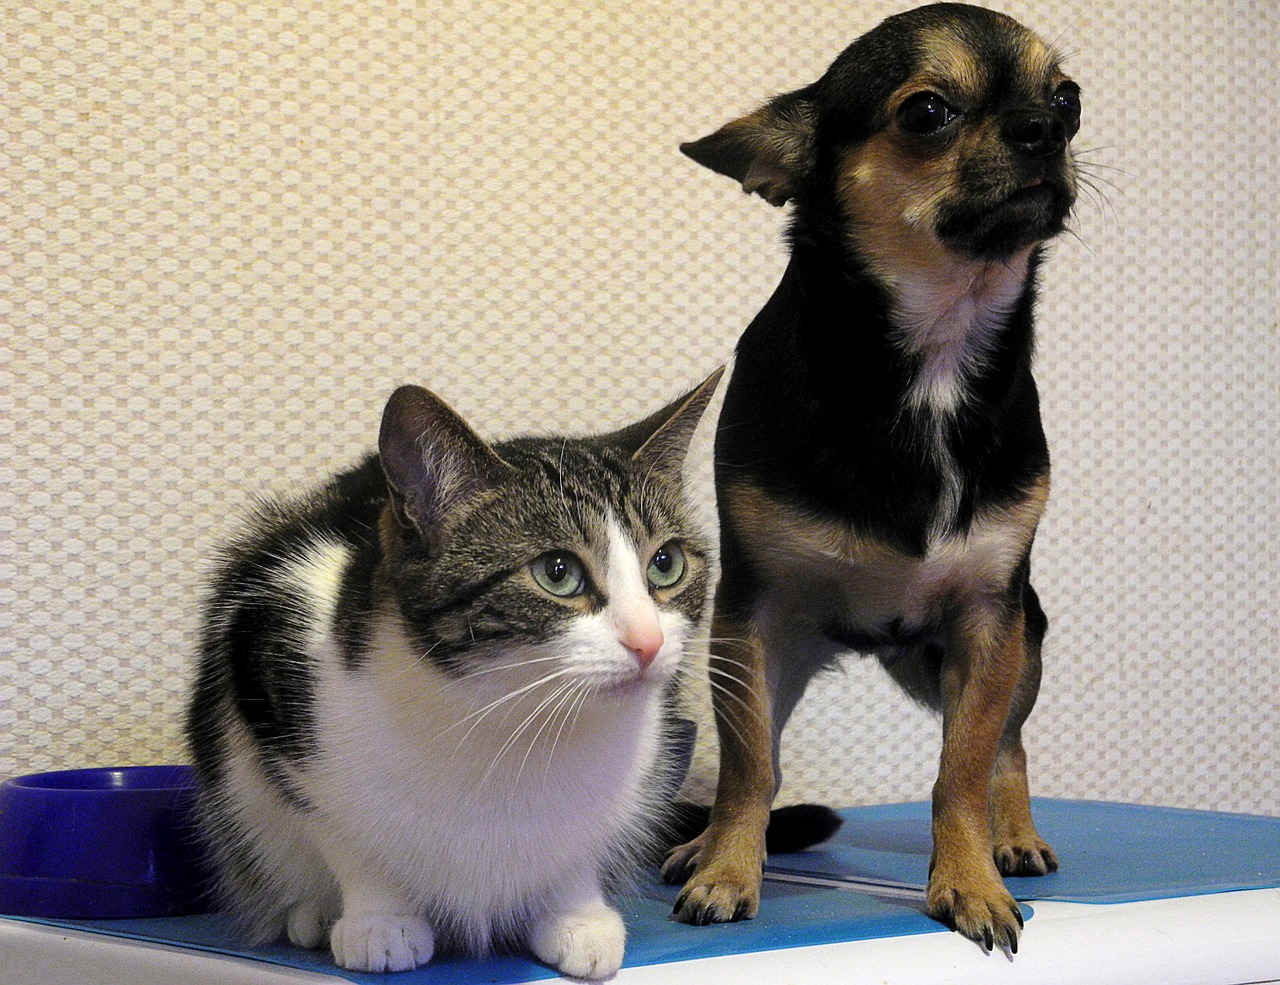 cat-and-dog-975023_1280